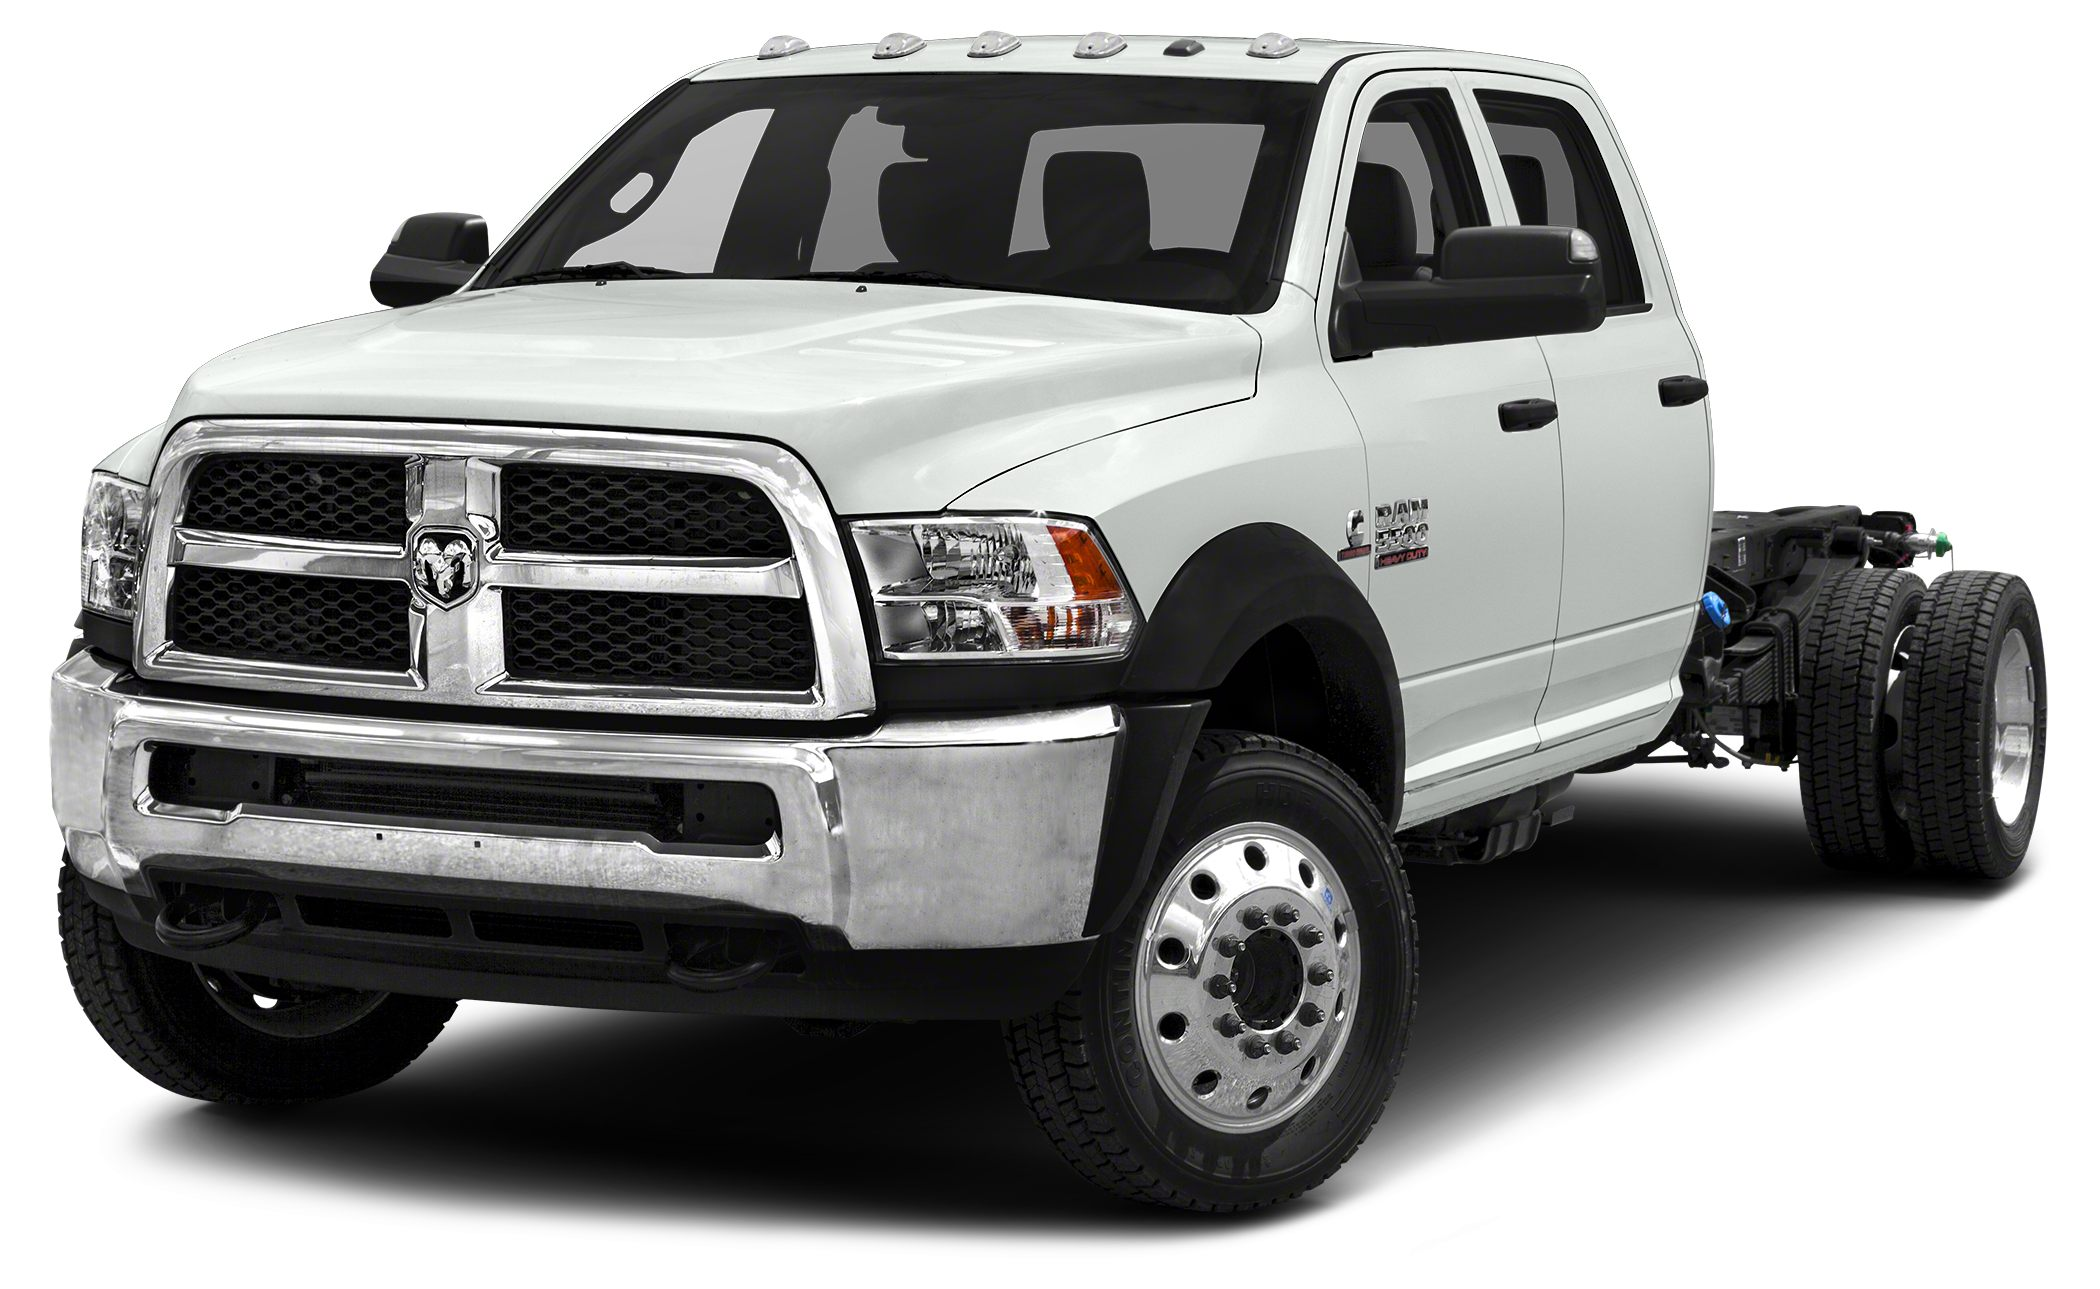 2016 RAM 3500 Chassis Cab TradesmanSLTLaramie Color Bright White Clearcoat Stock GG165994 VI